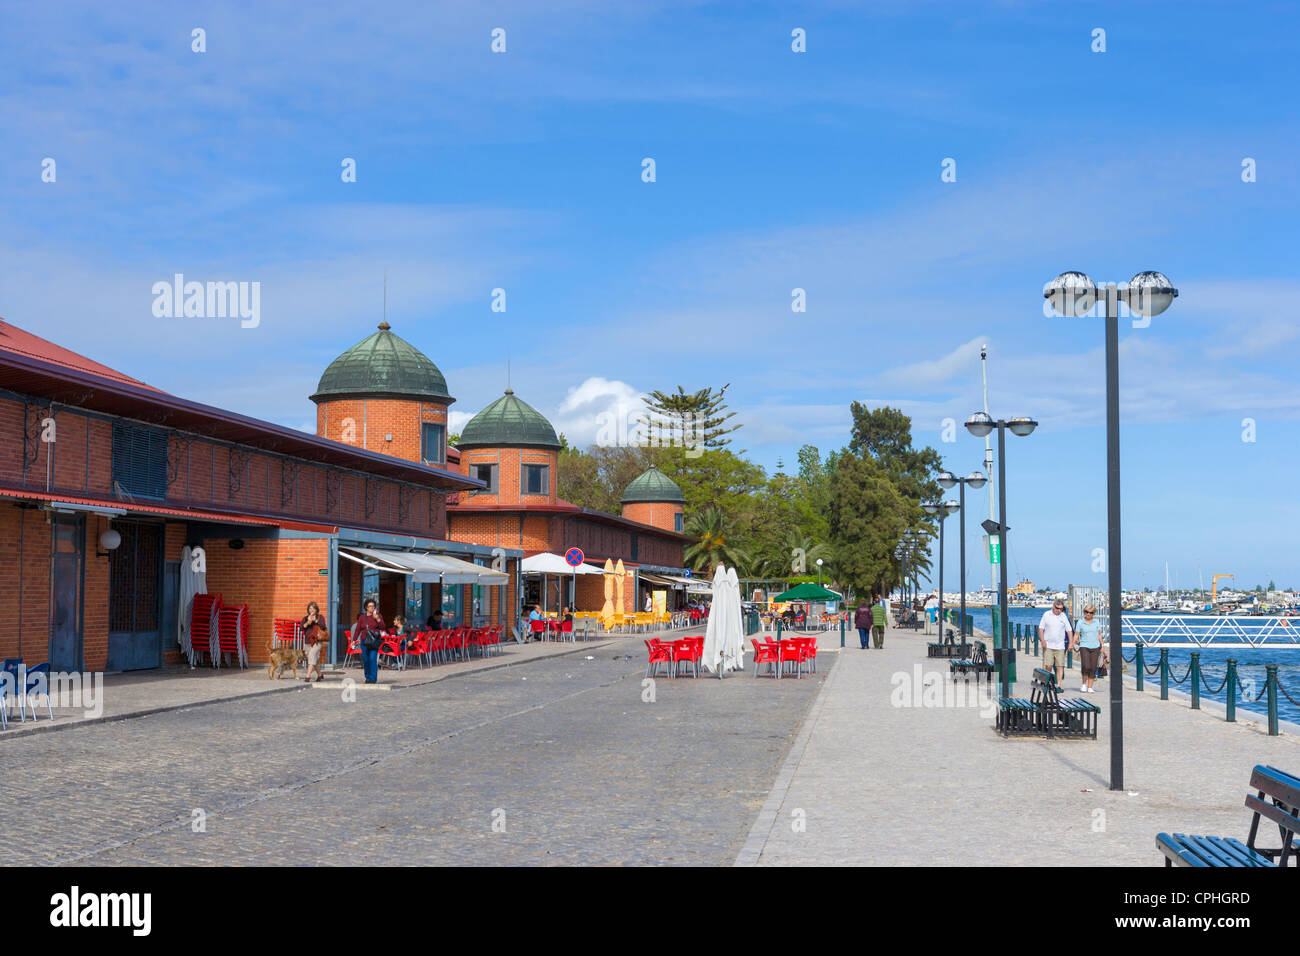 Market (Mercado) on the seafront, Olhao, Algarve, Portugal - Stock Image